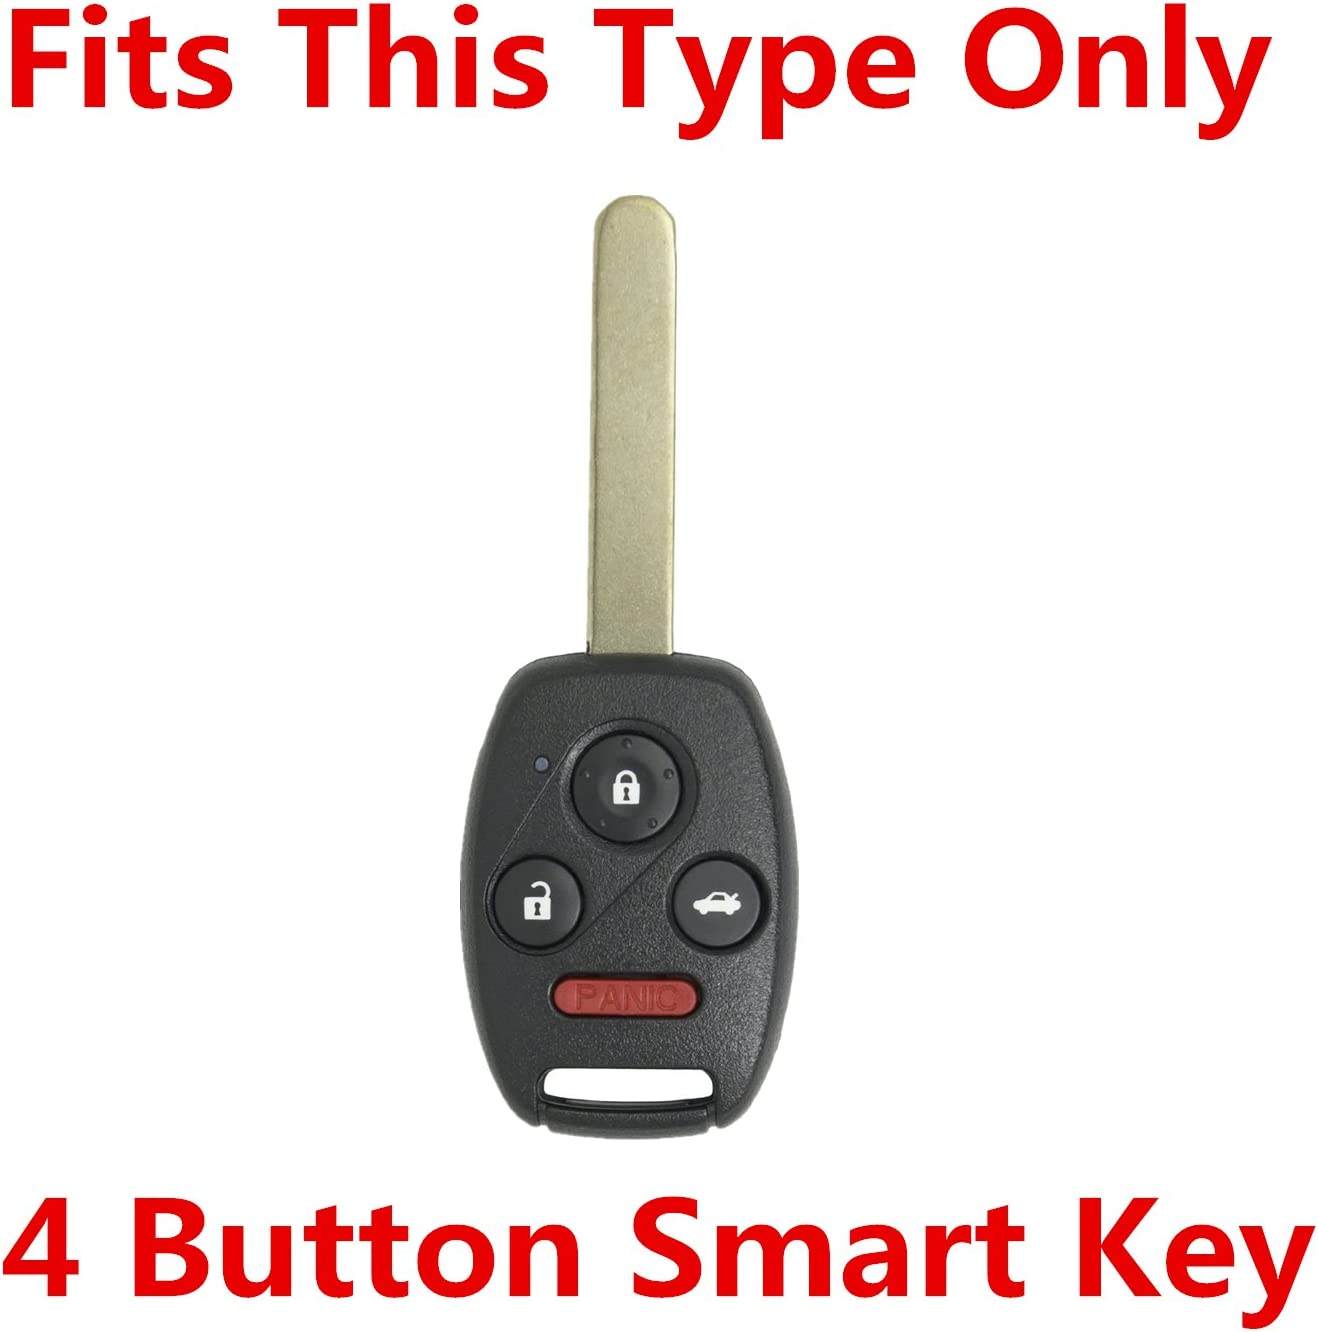 gules Rpkey Silicone Keyless Entry Remote Control Key Fob Cover Case protector For Honda Accord Accord Crosstour CR-V Civic Element Pilot OUCG8D-380H-A N5F-S0084A N5F-A05TAA